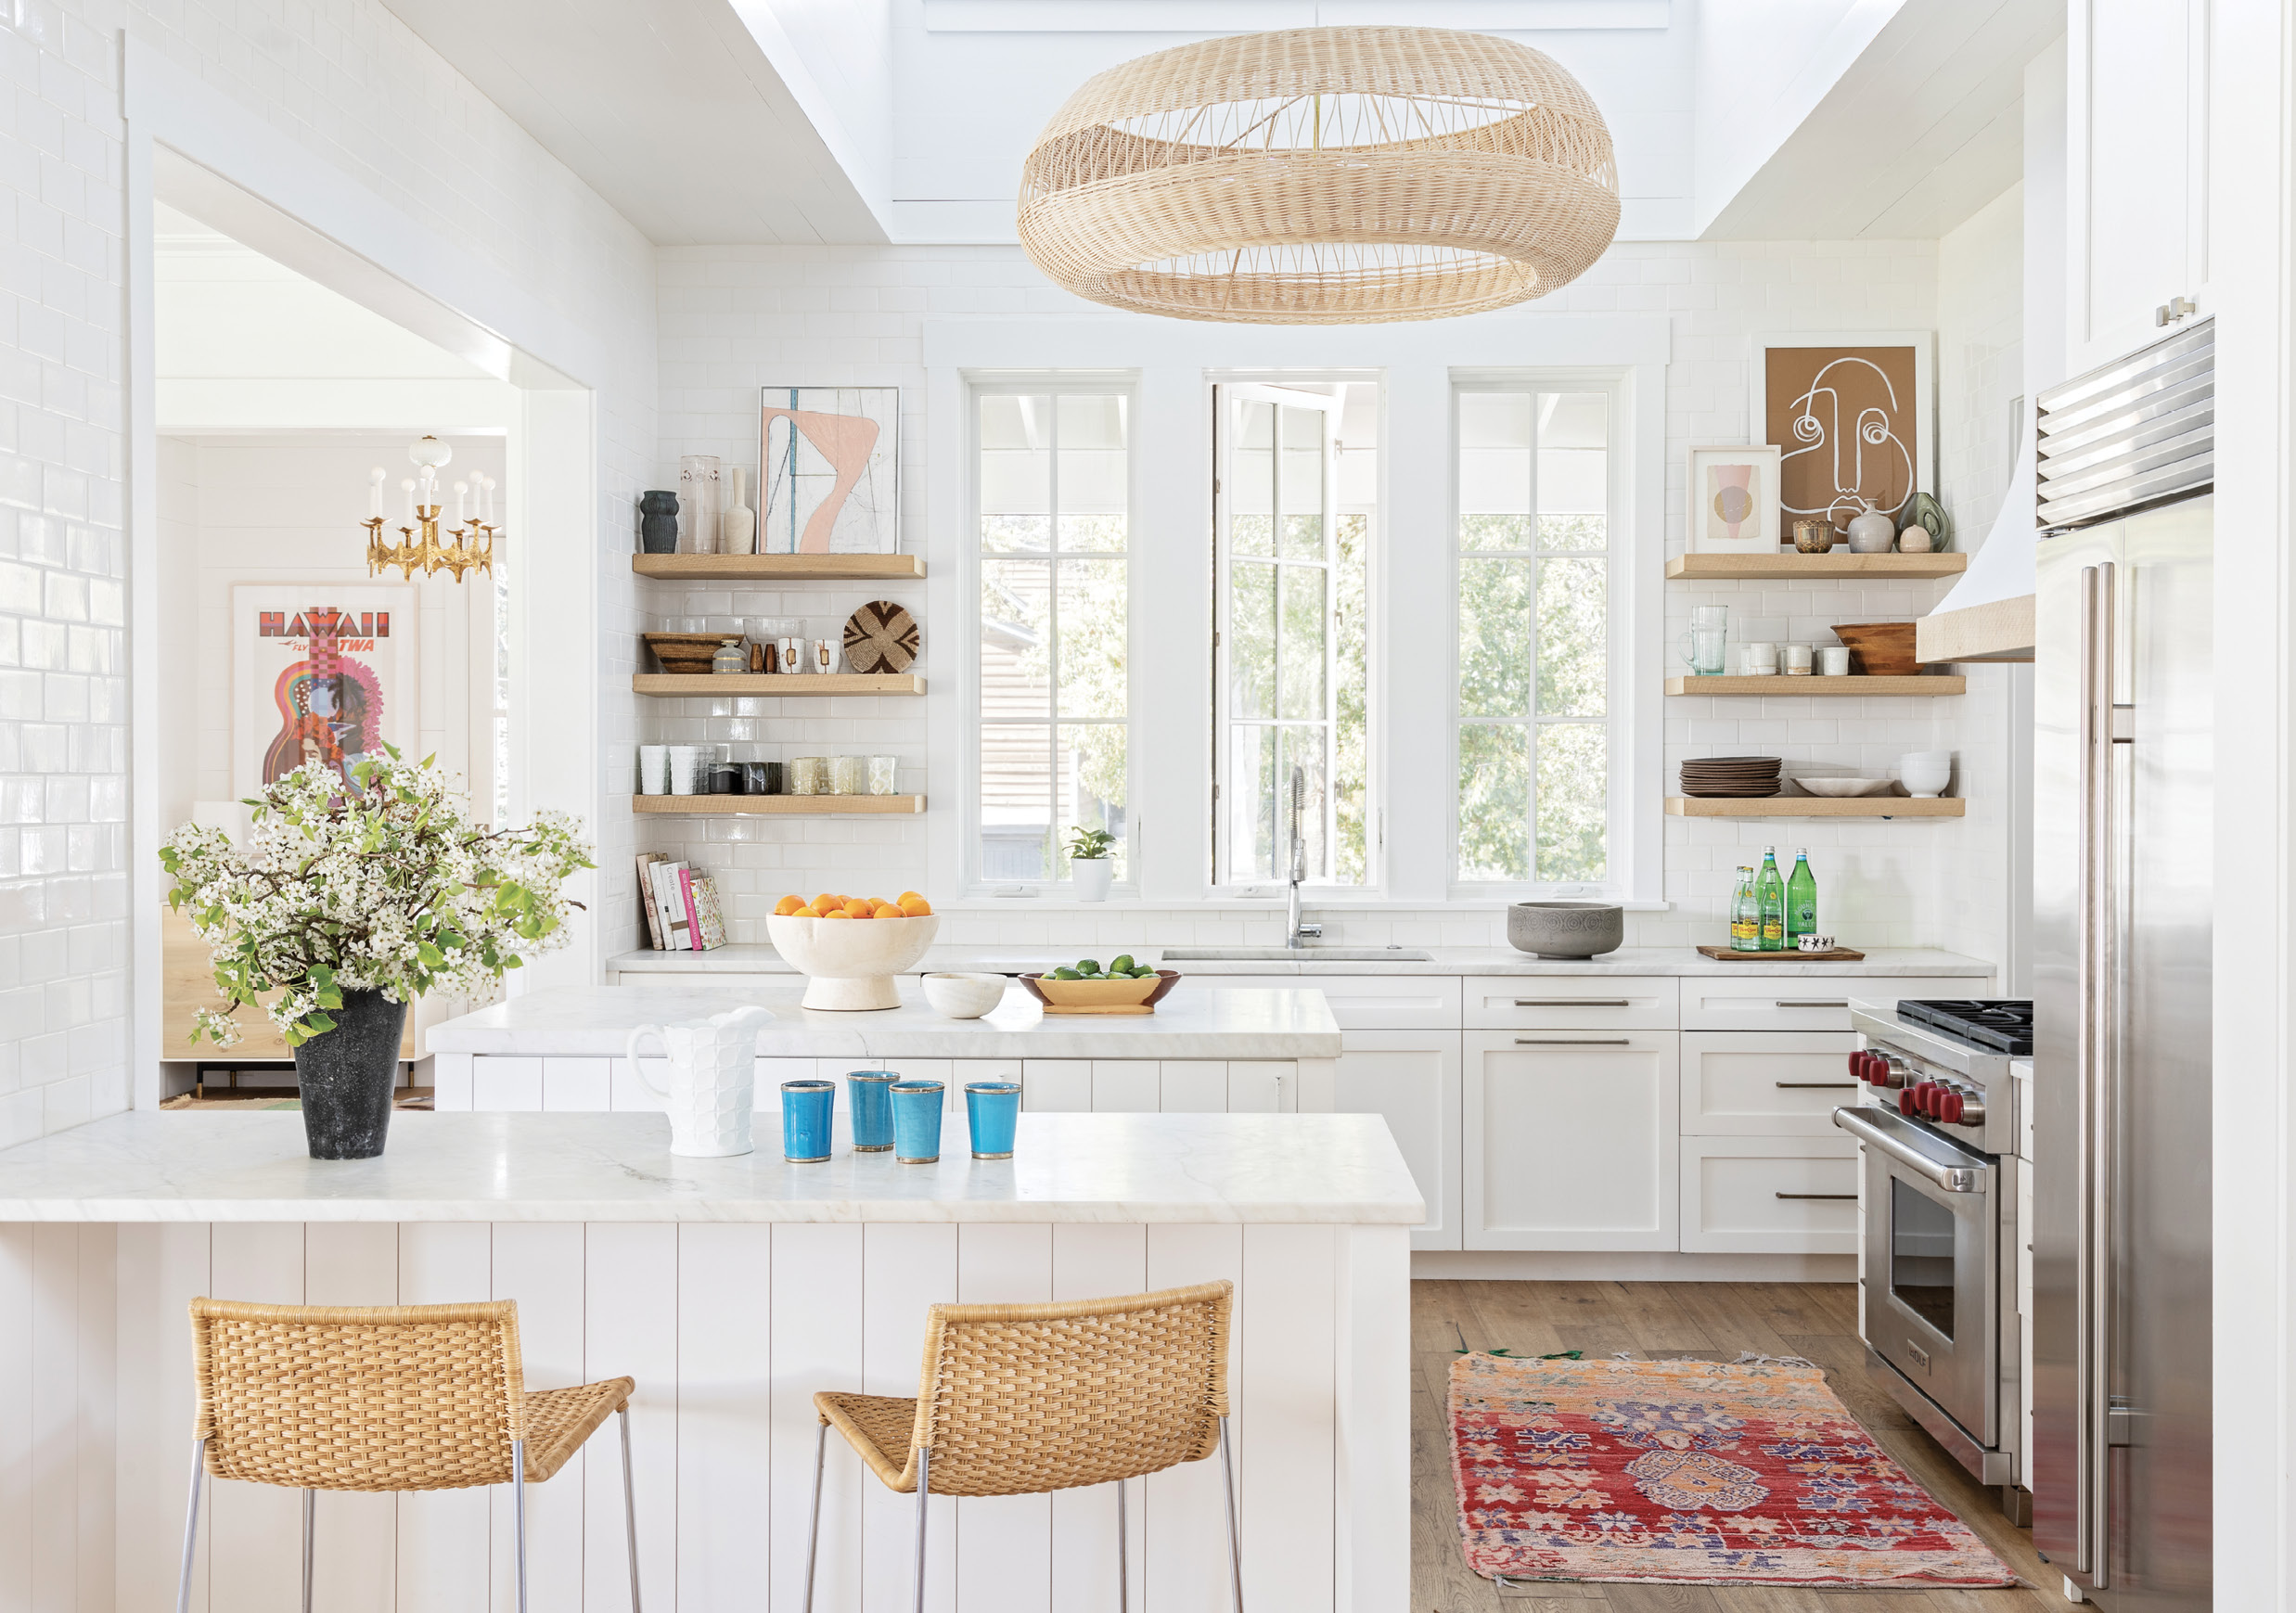 TIME FOR TEXTURE: The bright, white kitchen was revived with some key texture changes: wooden shelves replaced painted ones and a stainless steel hood was swapped for plaster trimmed in oak.